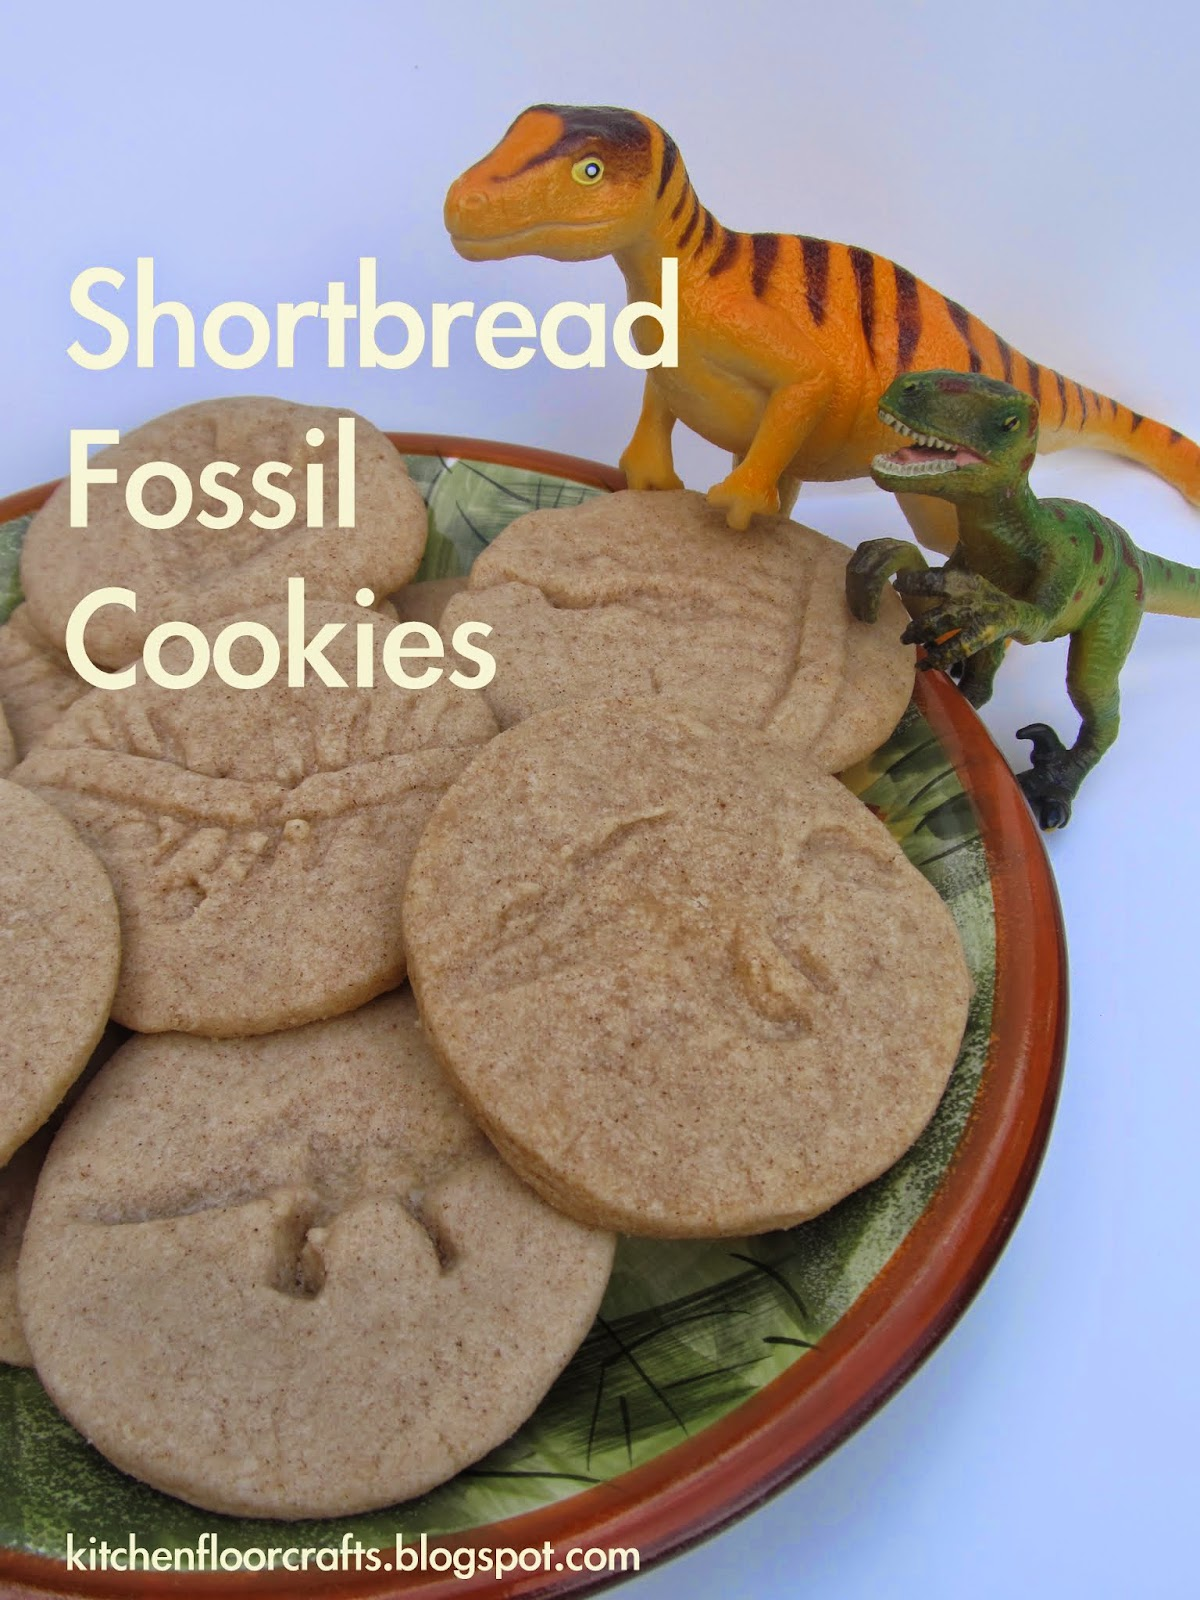 themes, which led us to create these yummy shortbread fossil cookies ...